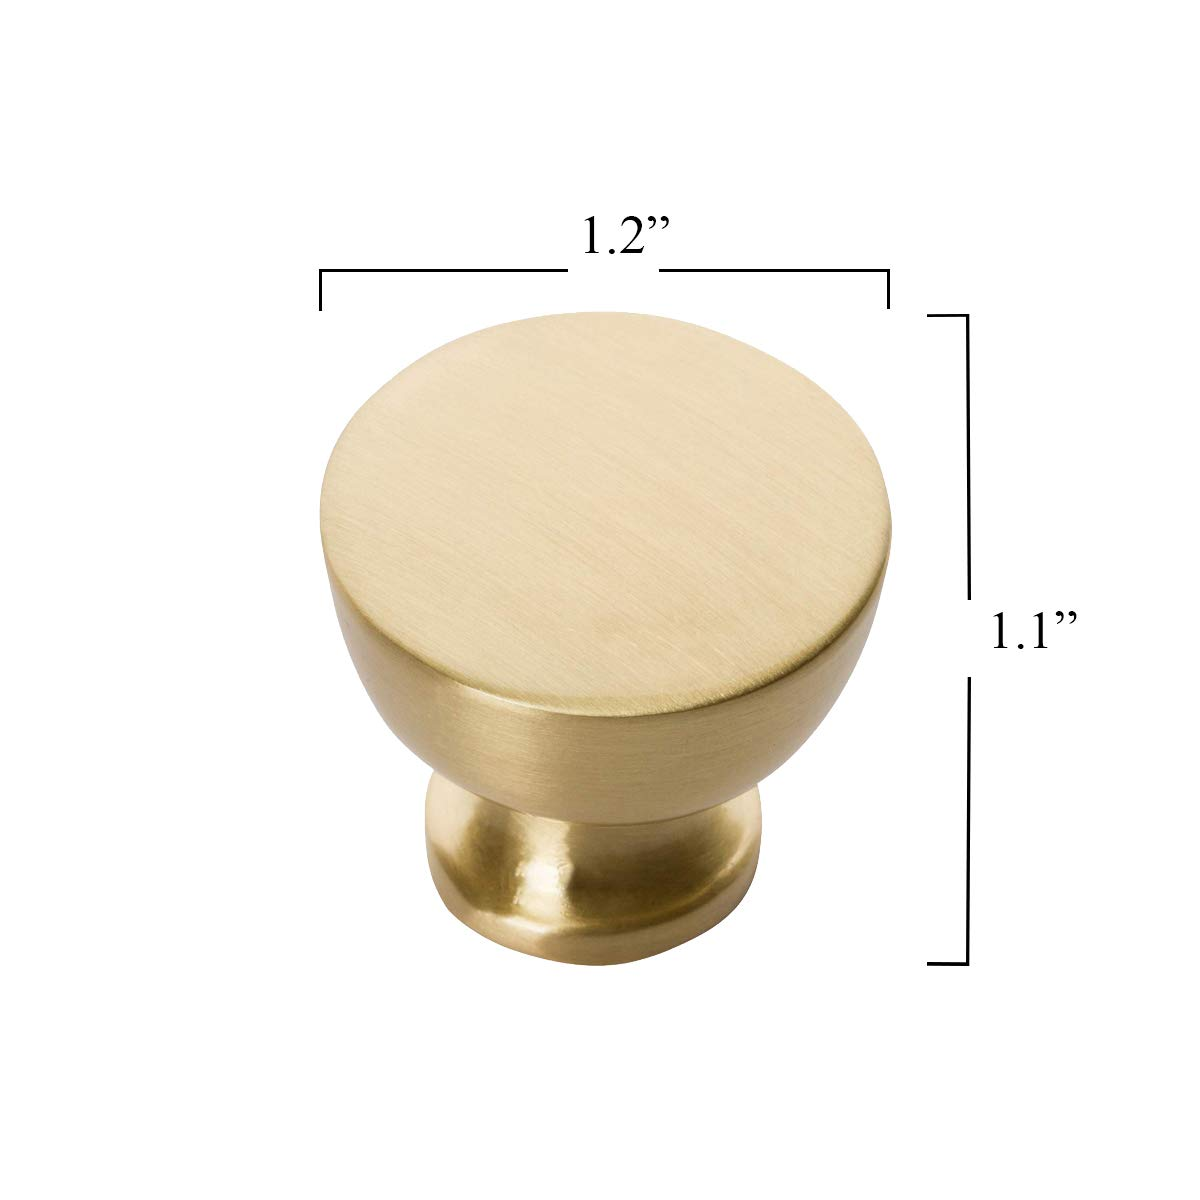 Southern Hills Satin Brass Cabinet Knobs - Pack of 5 -Brushed Brass Knobs - Round - Pack of 5 - Kitchen Drawer Pulls SHKM013-BRS-5 by Southern Hills (Image #3)